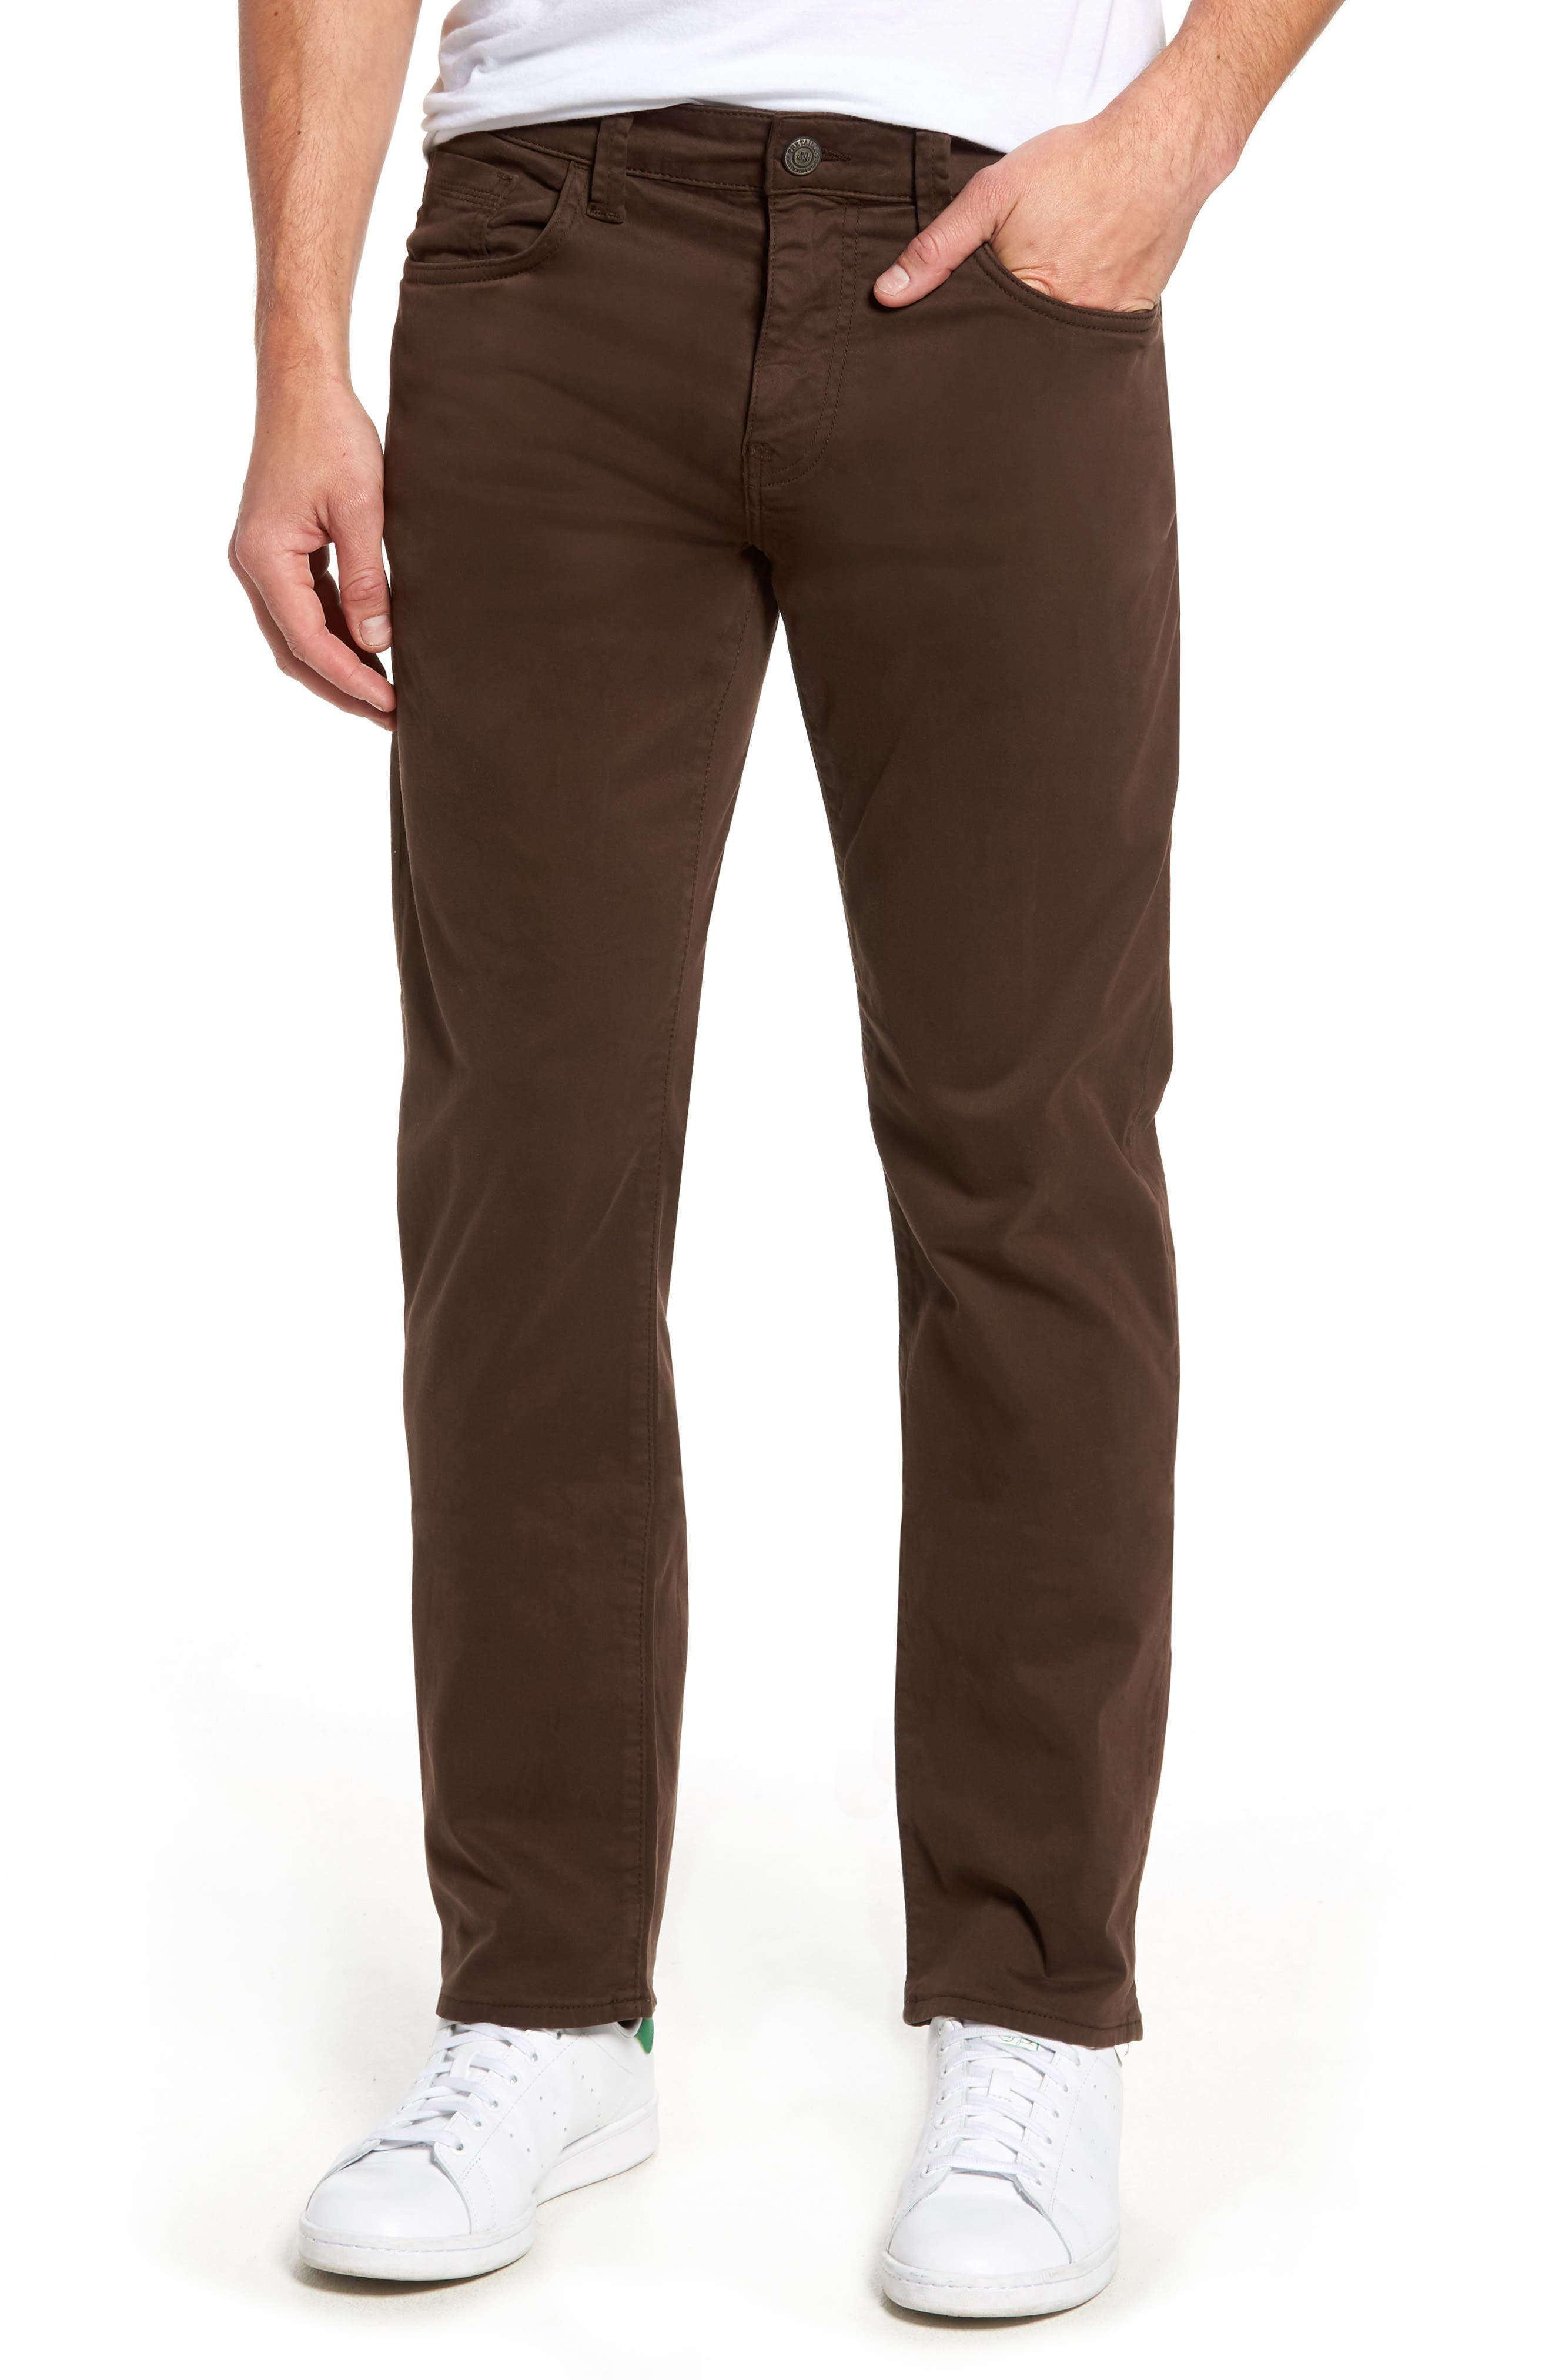 Zach Straight Fit Twill Pants,                             Main thumbnail 1, color,                             COFFEE BEAN TWILL